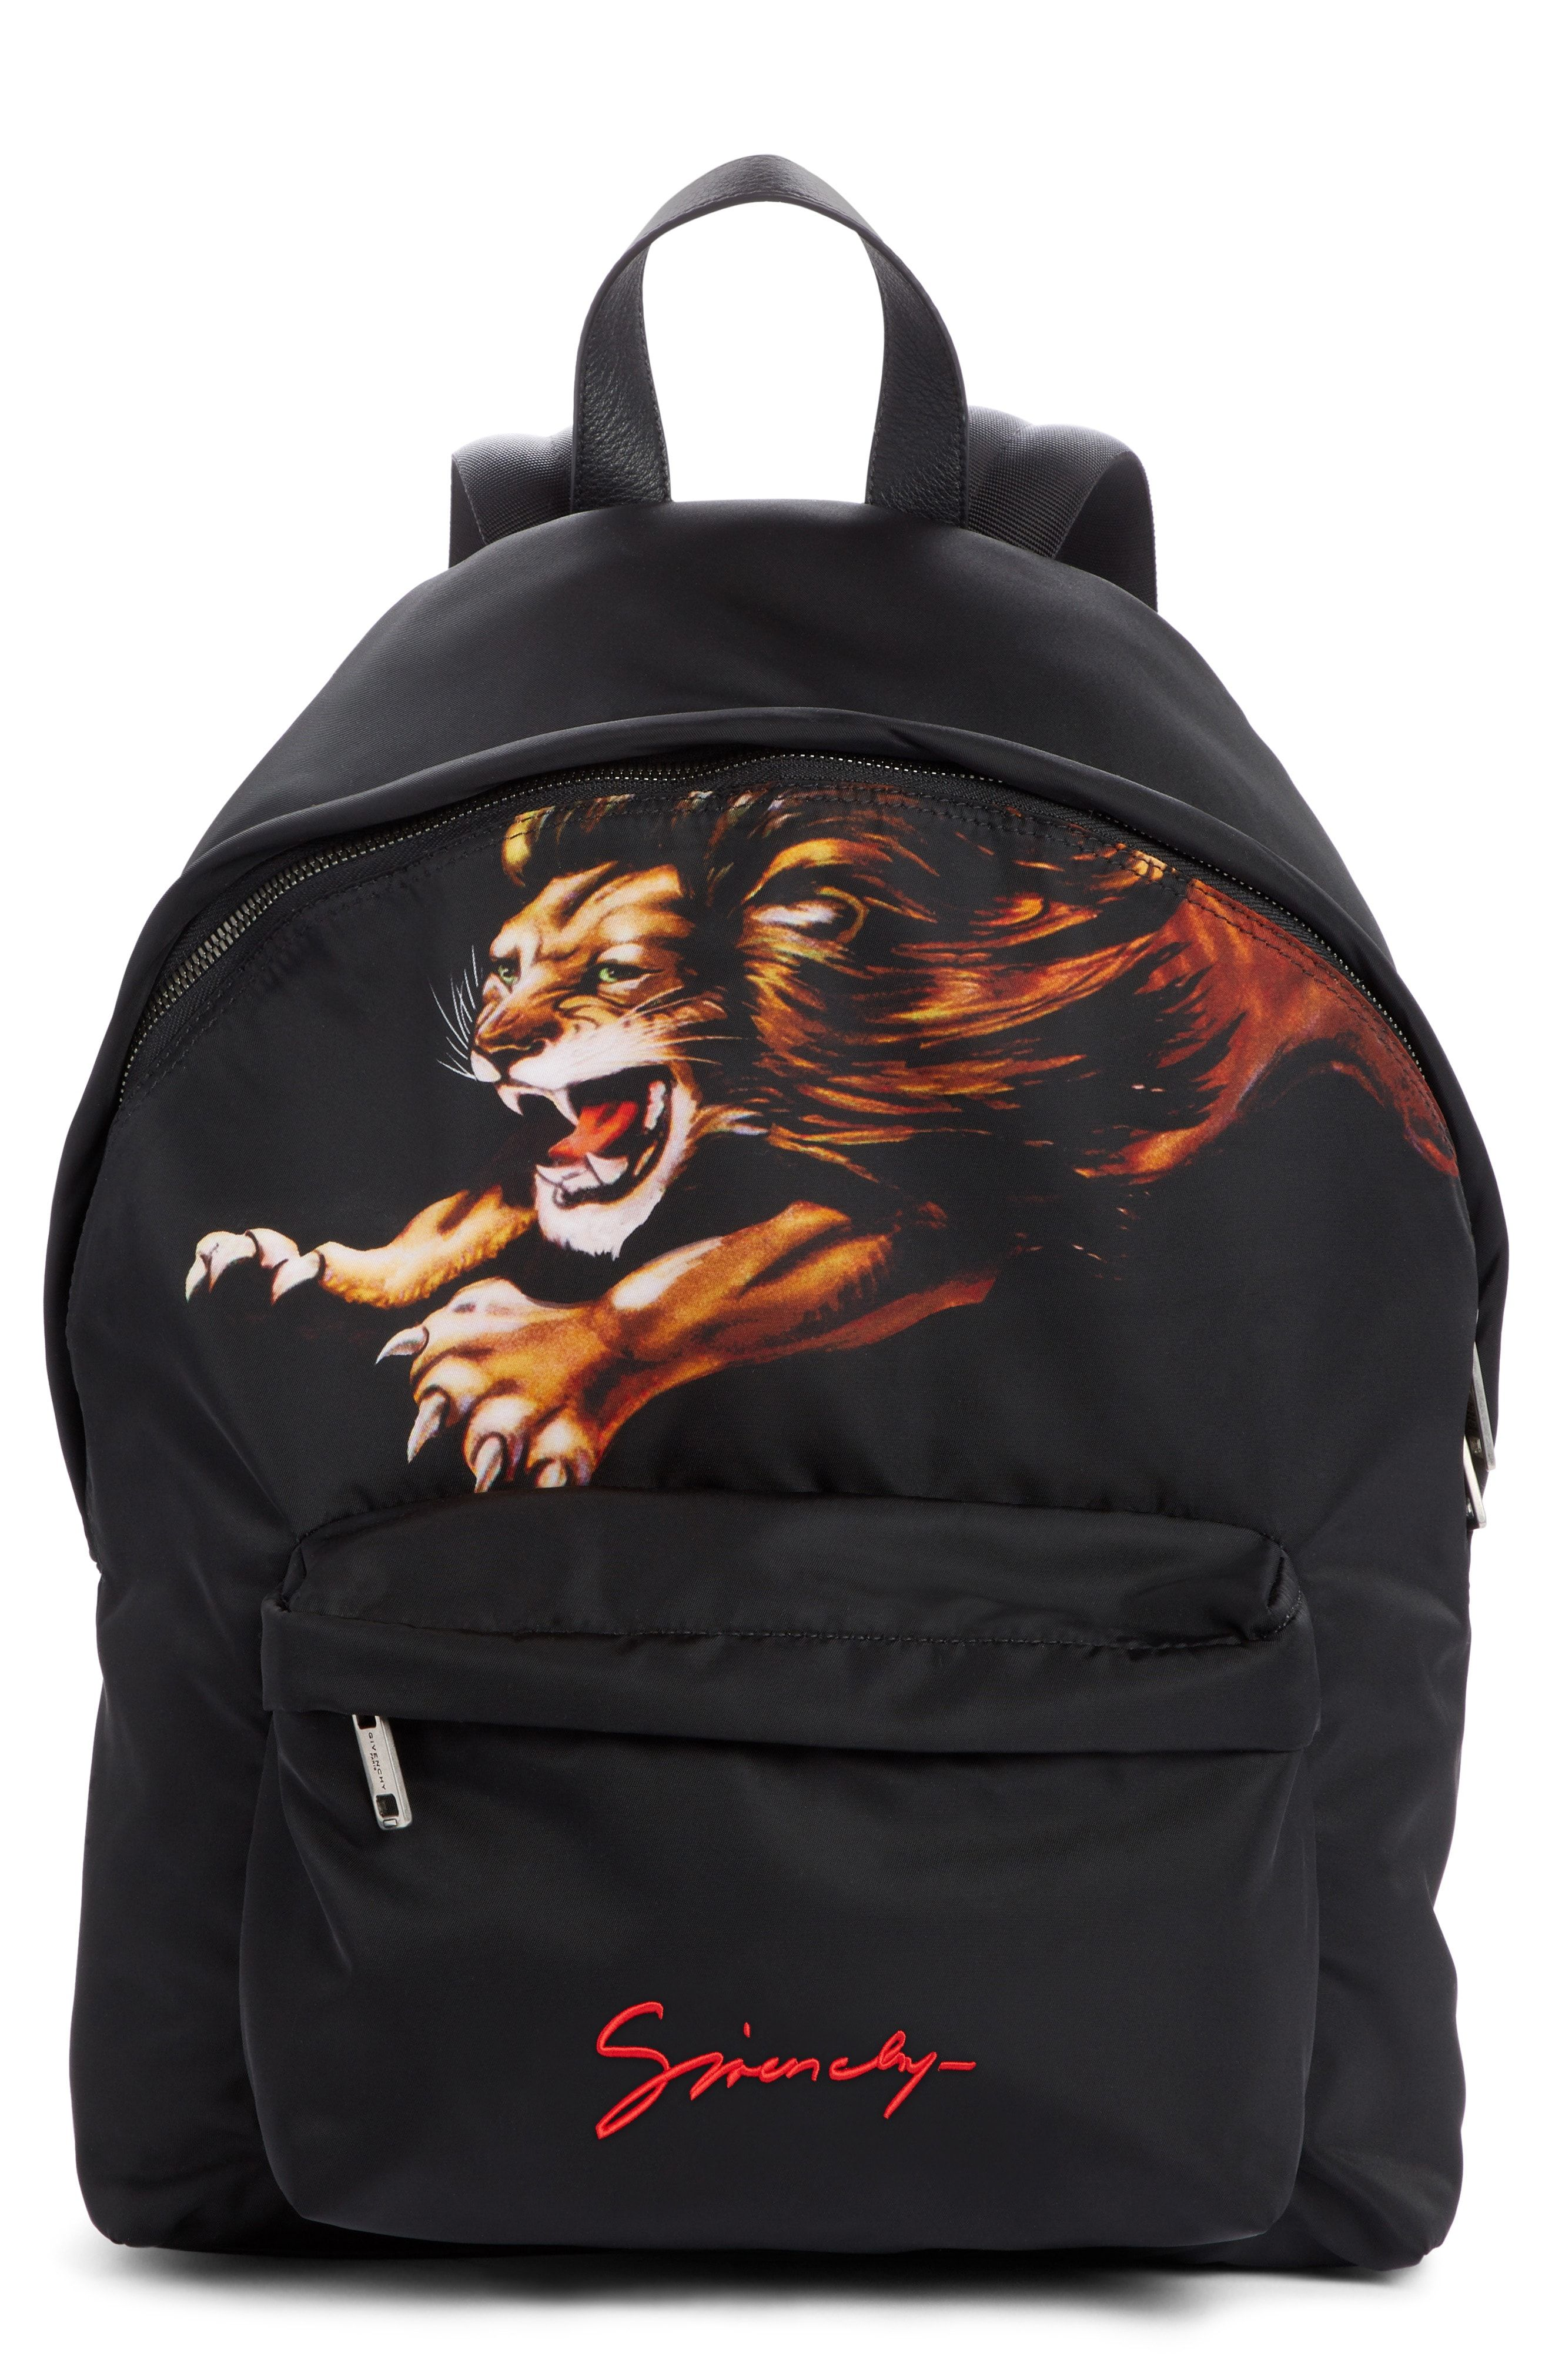 edf9224323 GIVENCHY LION PRINT BACKPACK - BLACK.  givenchy  bags  backpacks ...